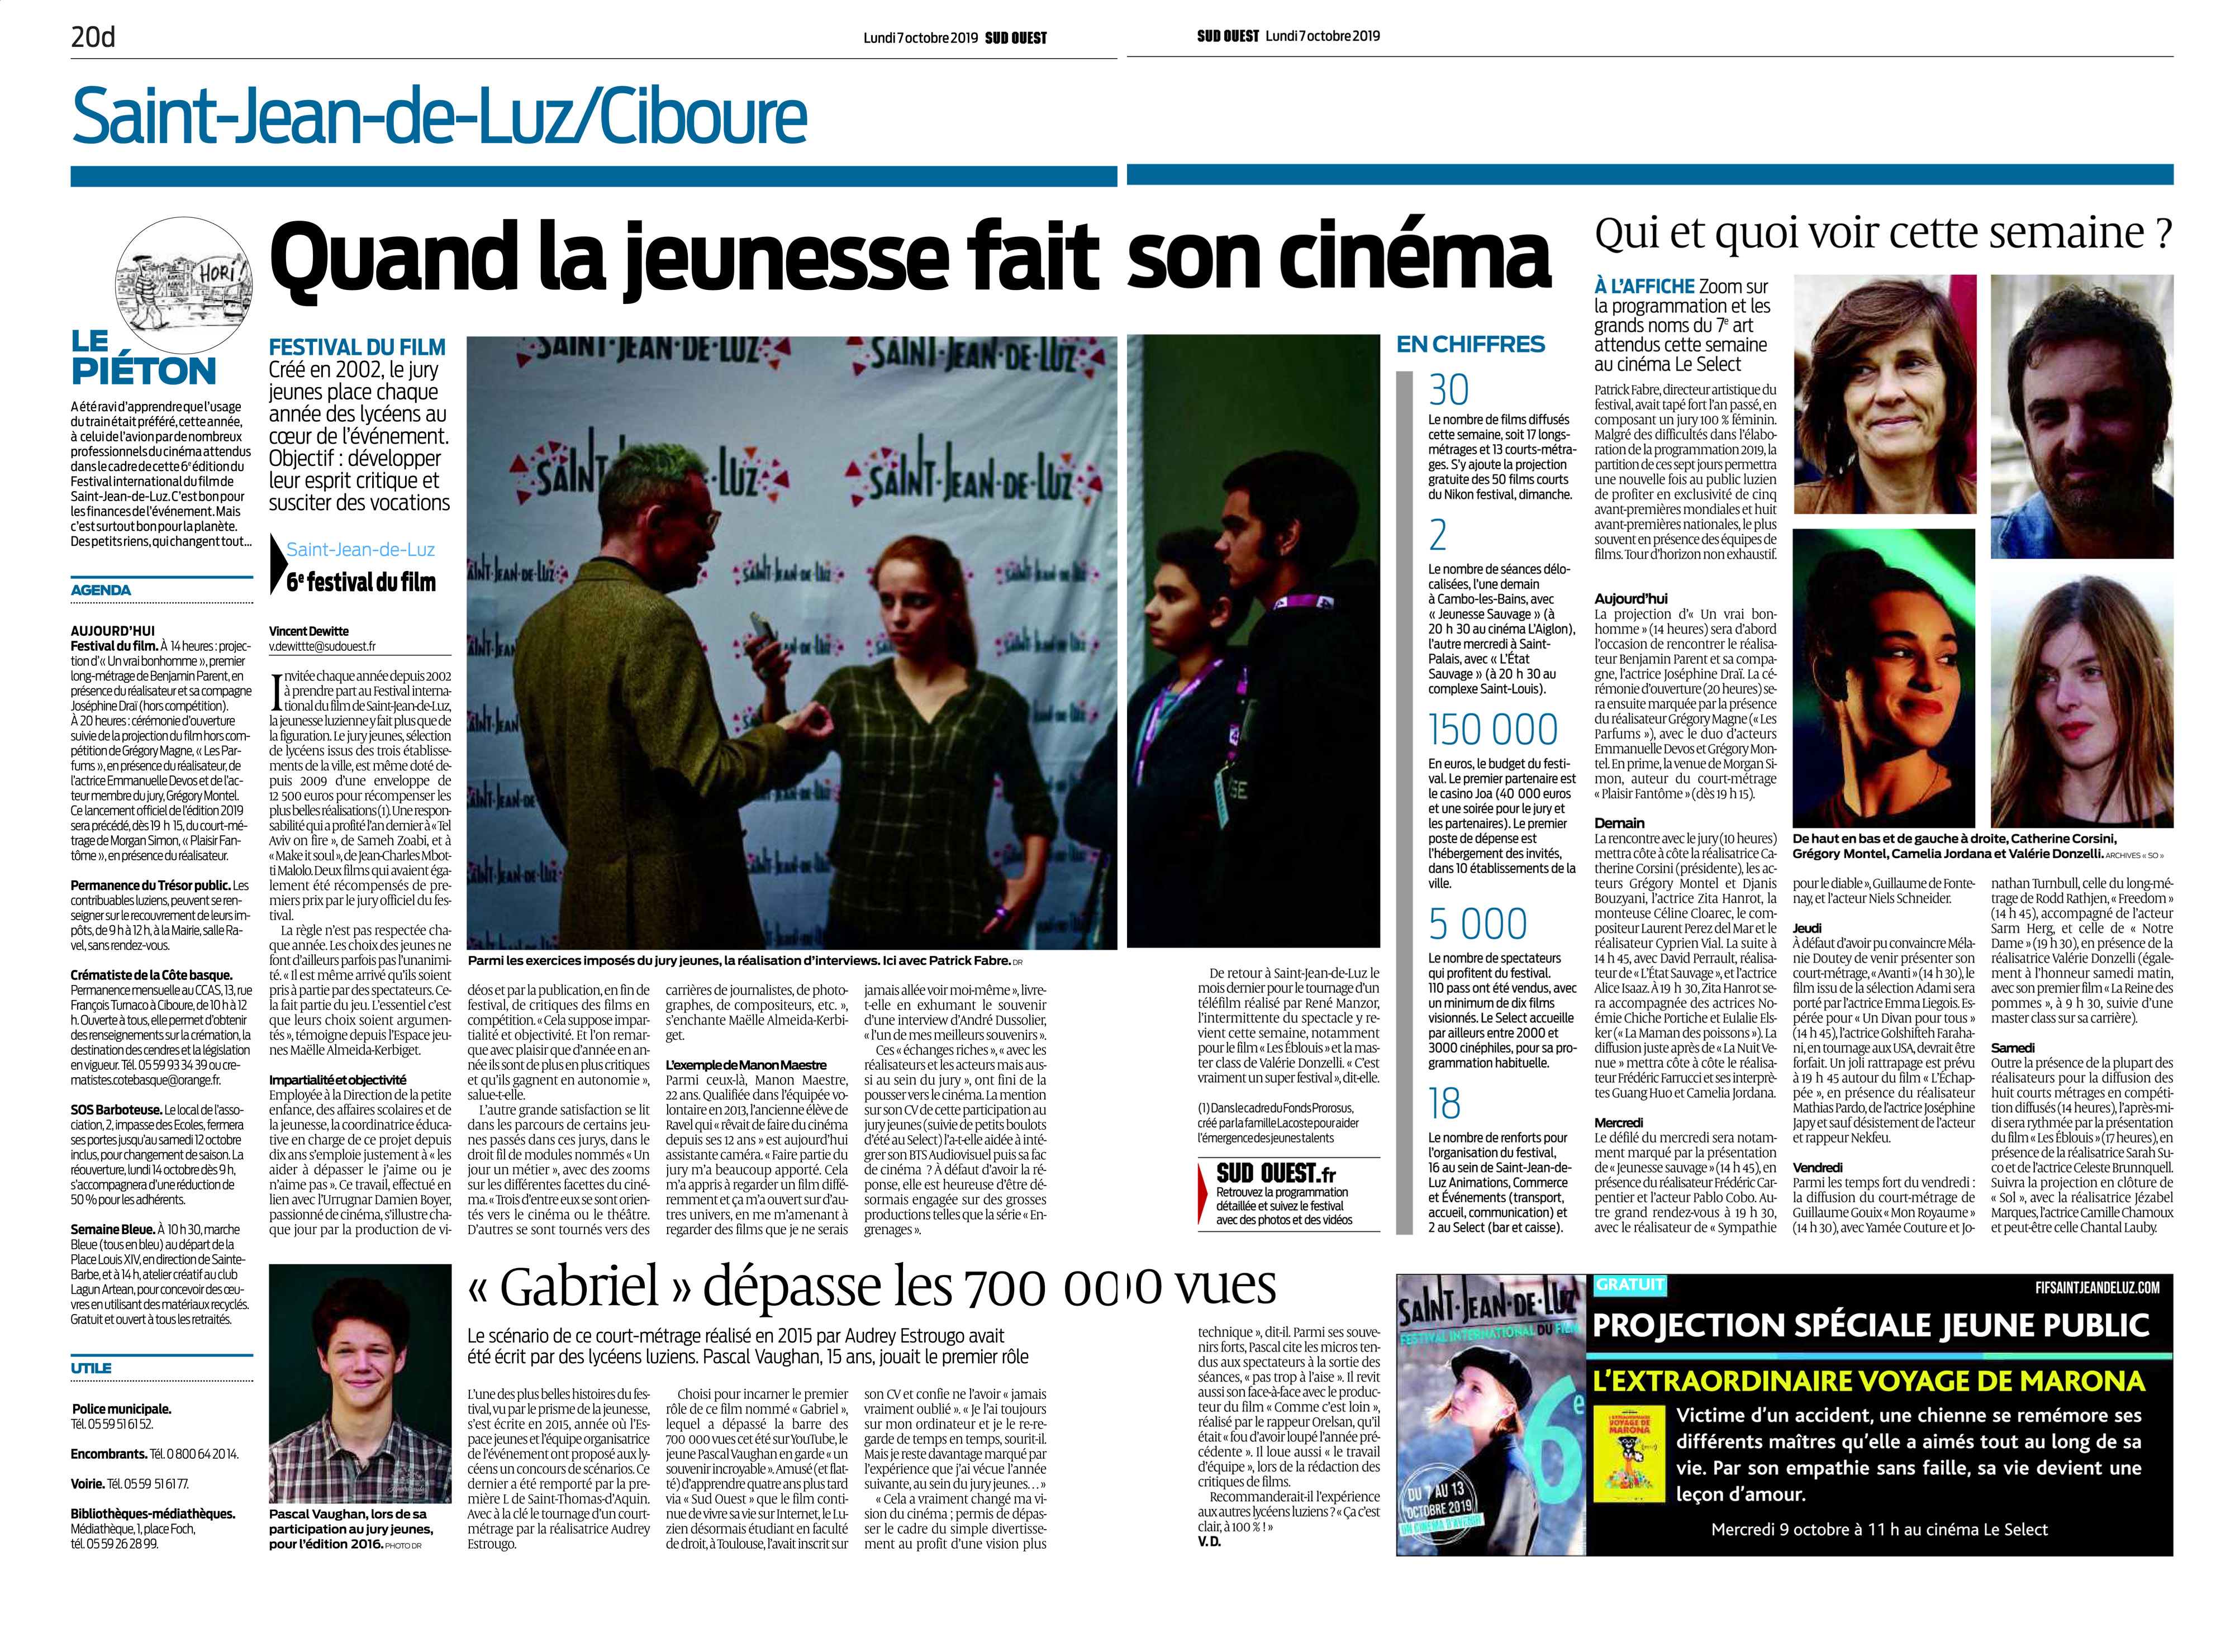 07-10-2019 Sud Ouest Journal